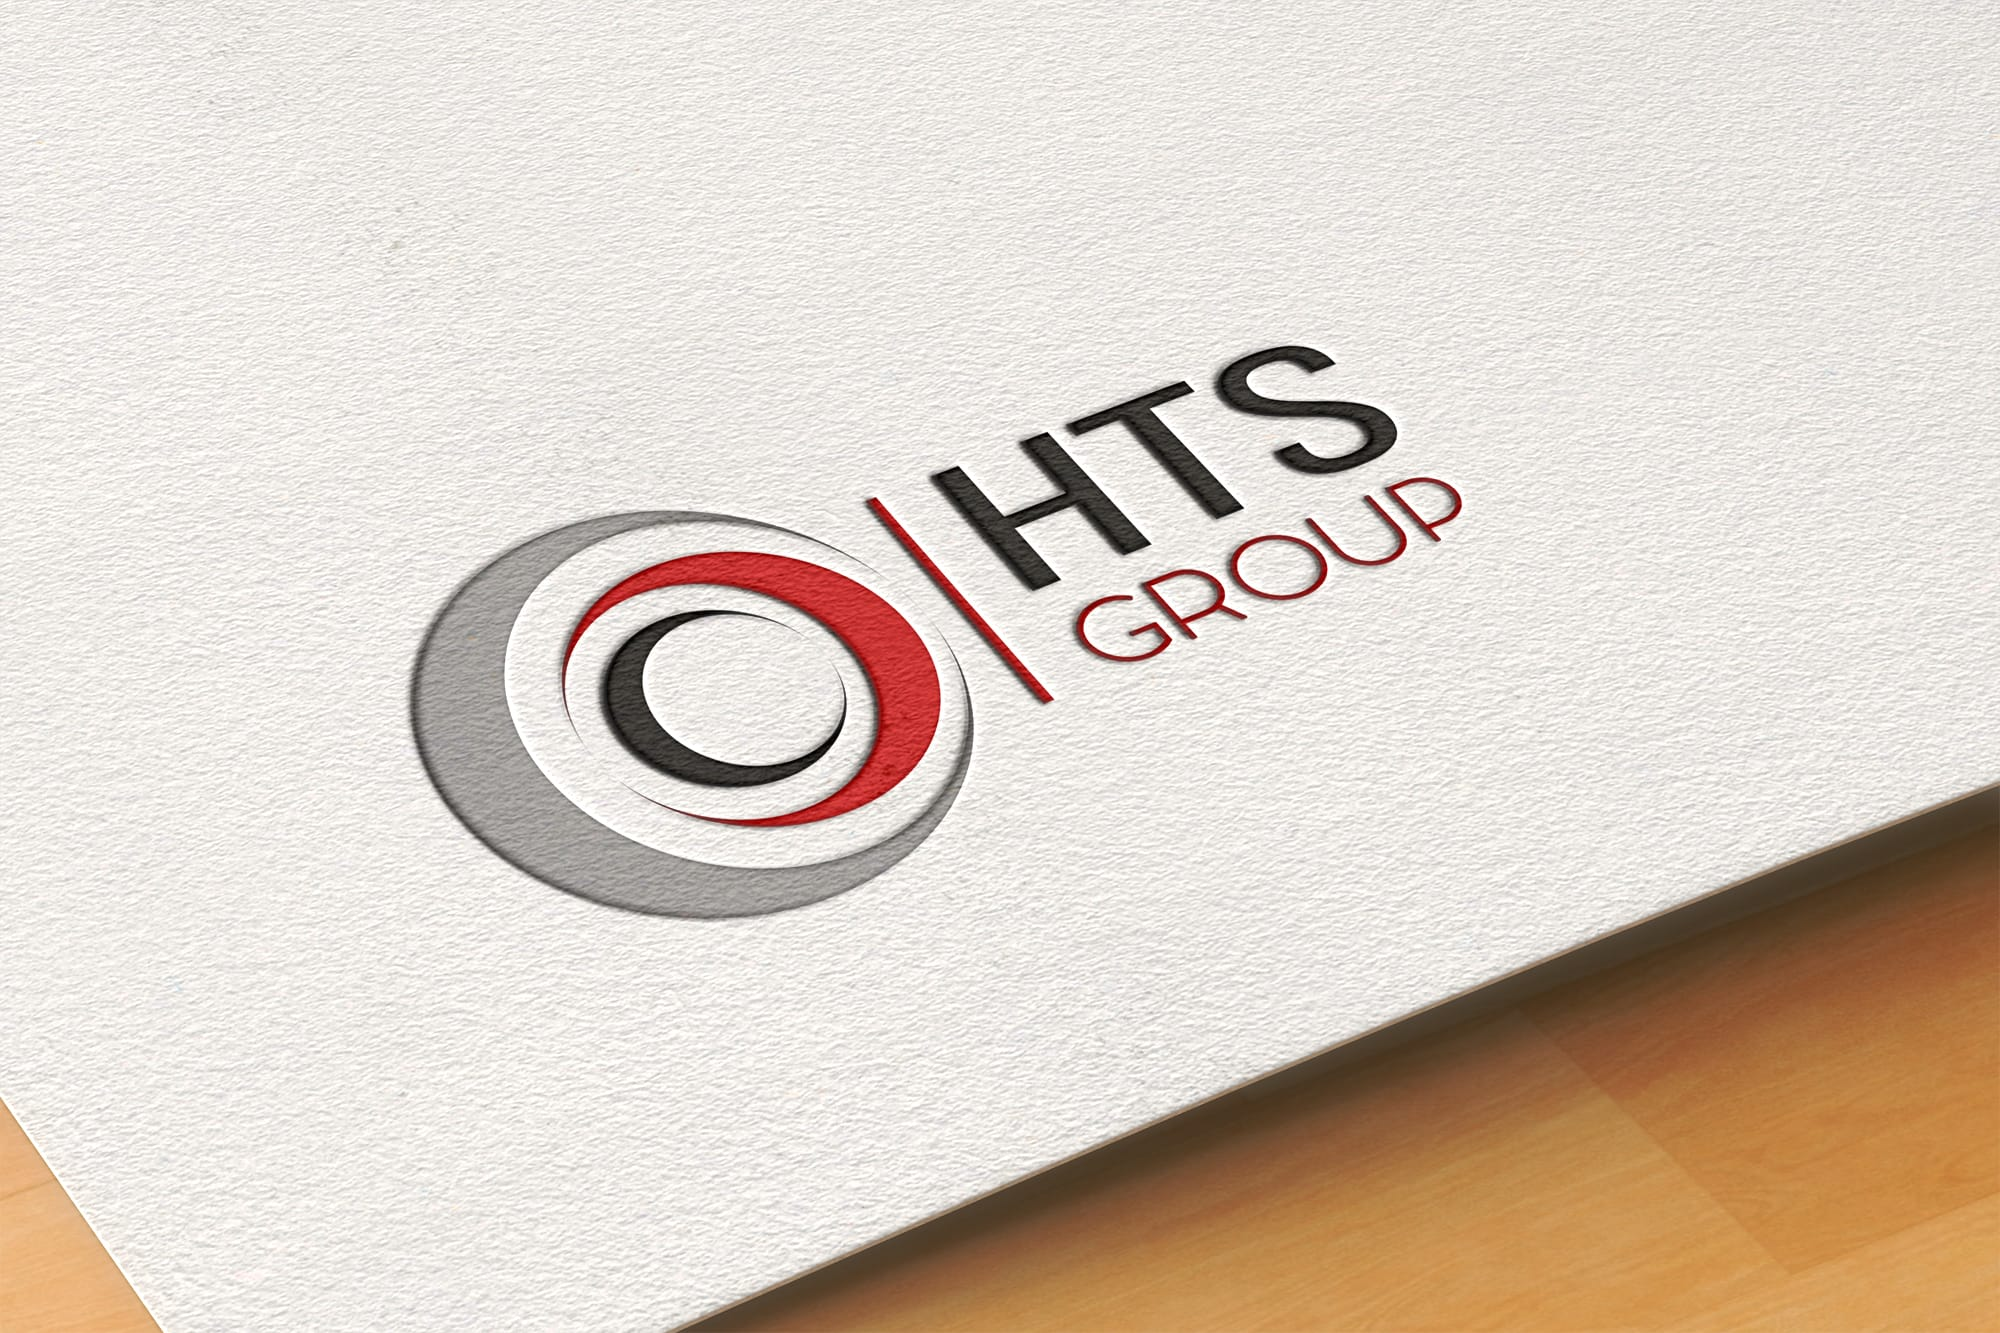 logo hts group sbcom steven berg